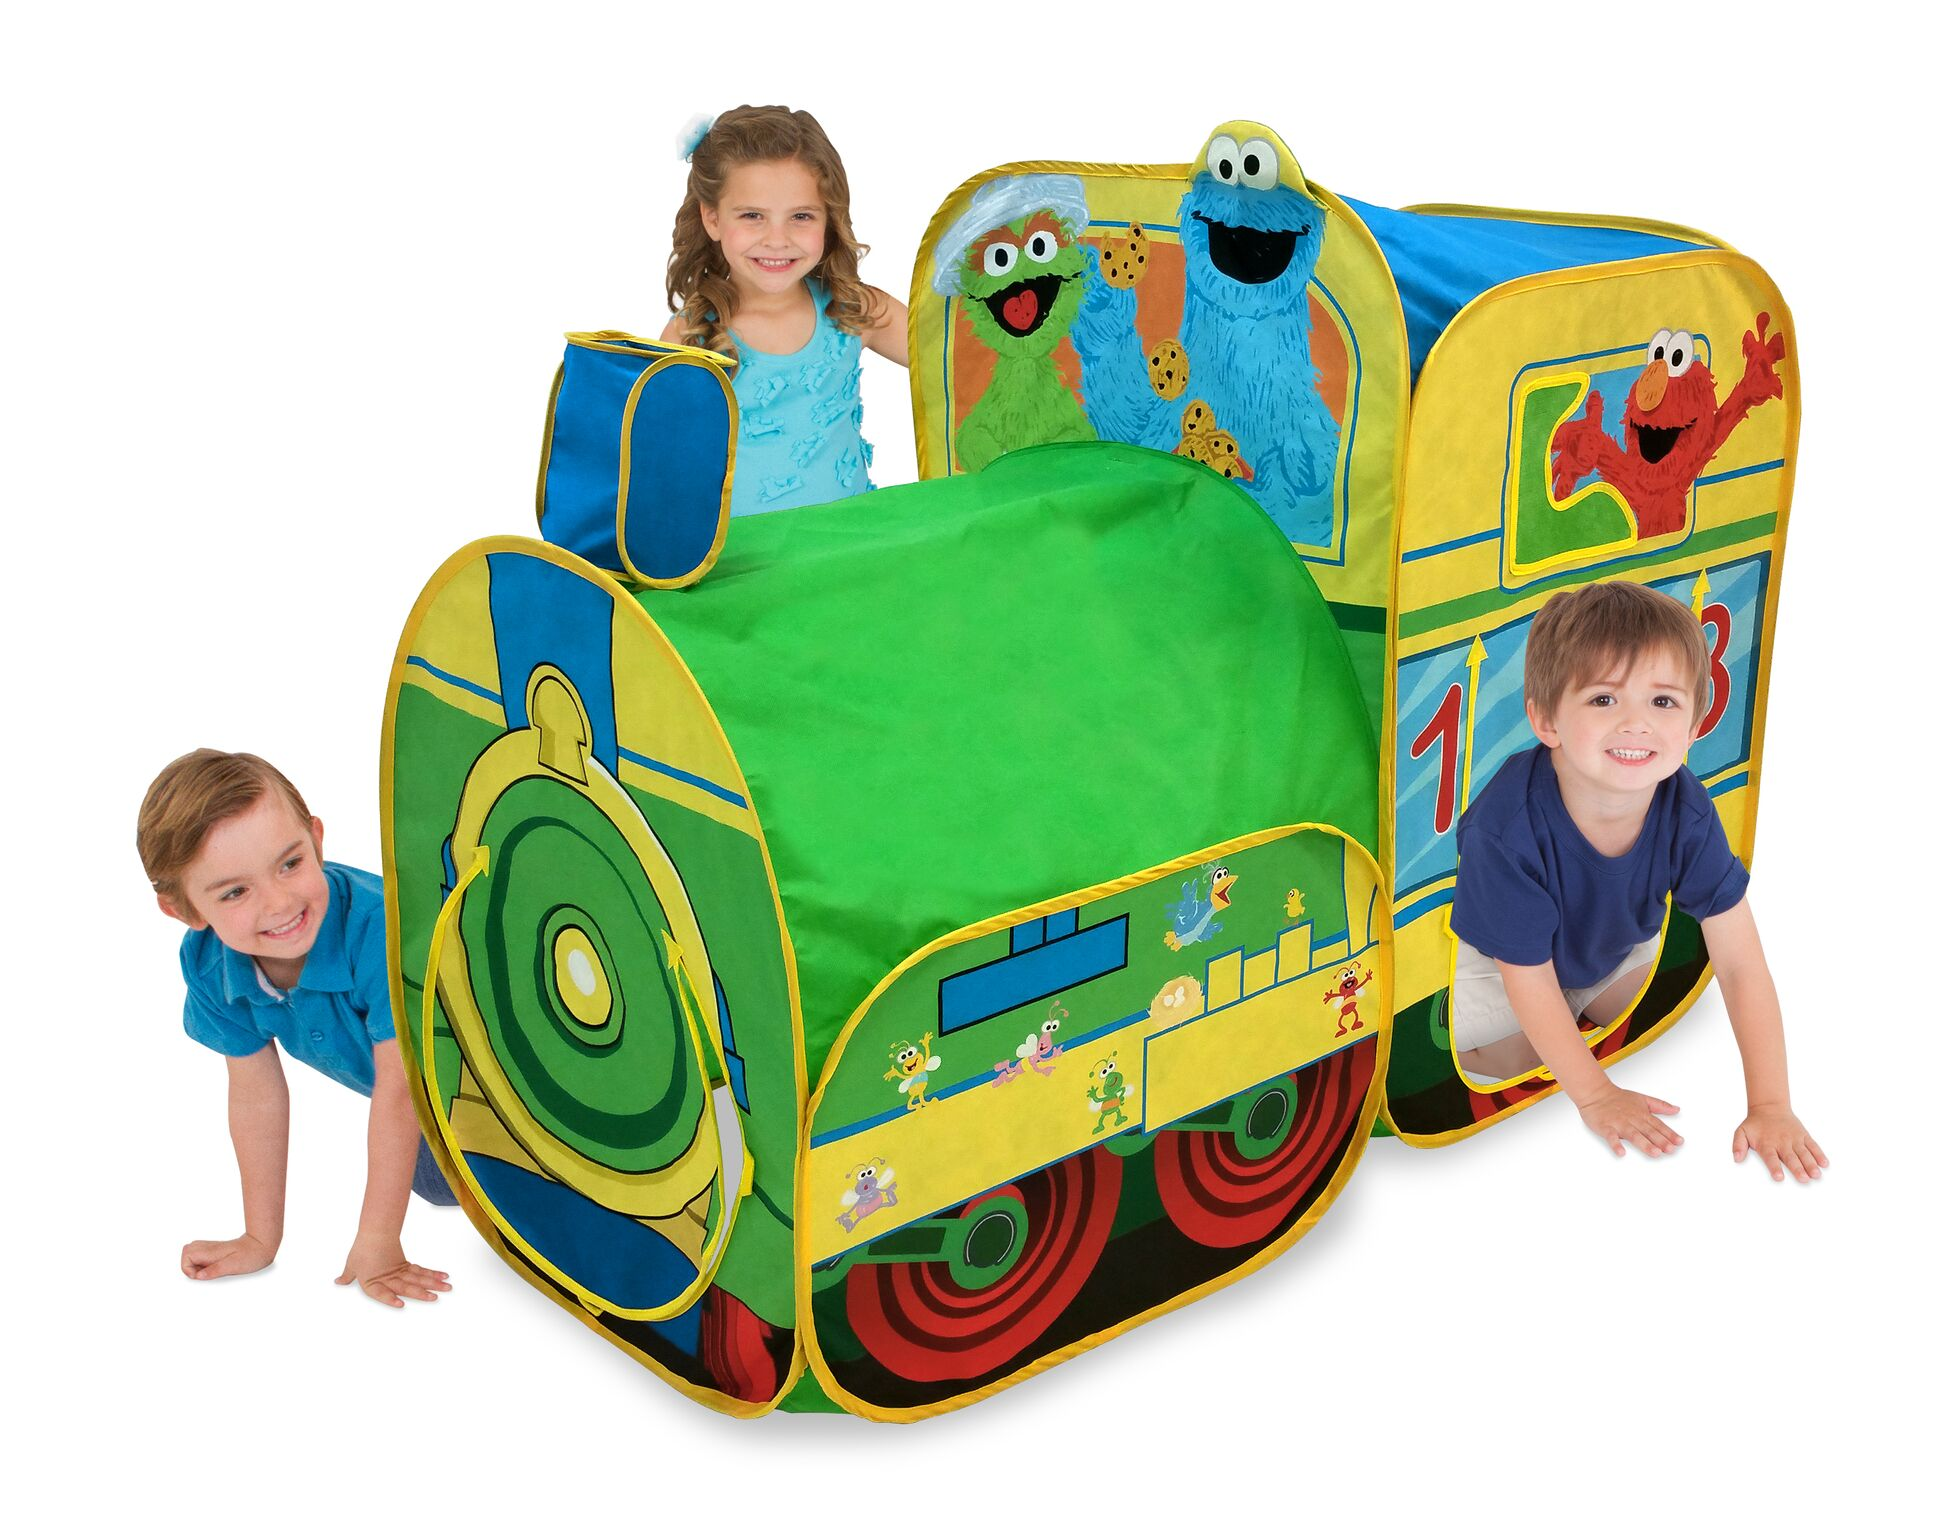 Playhut Sesame Street Express Train Play Tent  sc 1 st  Walmart & Playhut Sesame Street Express Train Play Tent - Walmart.com